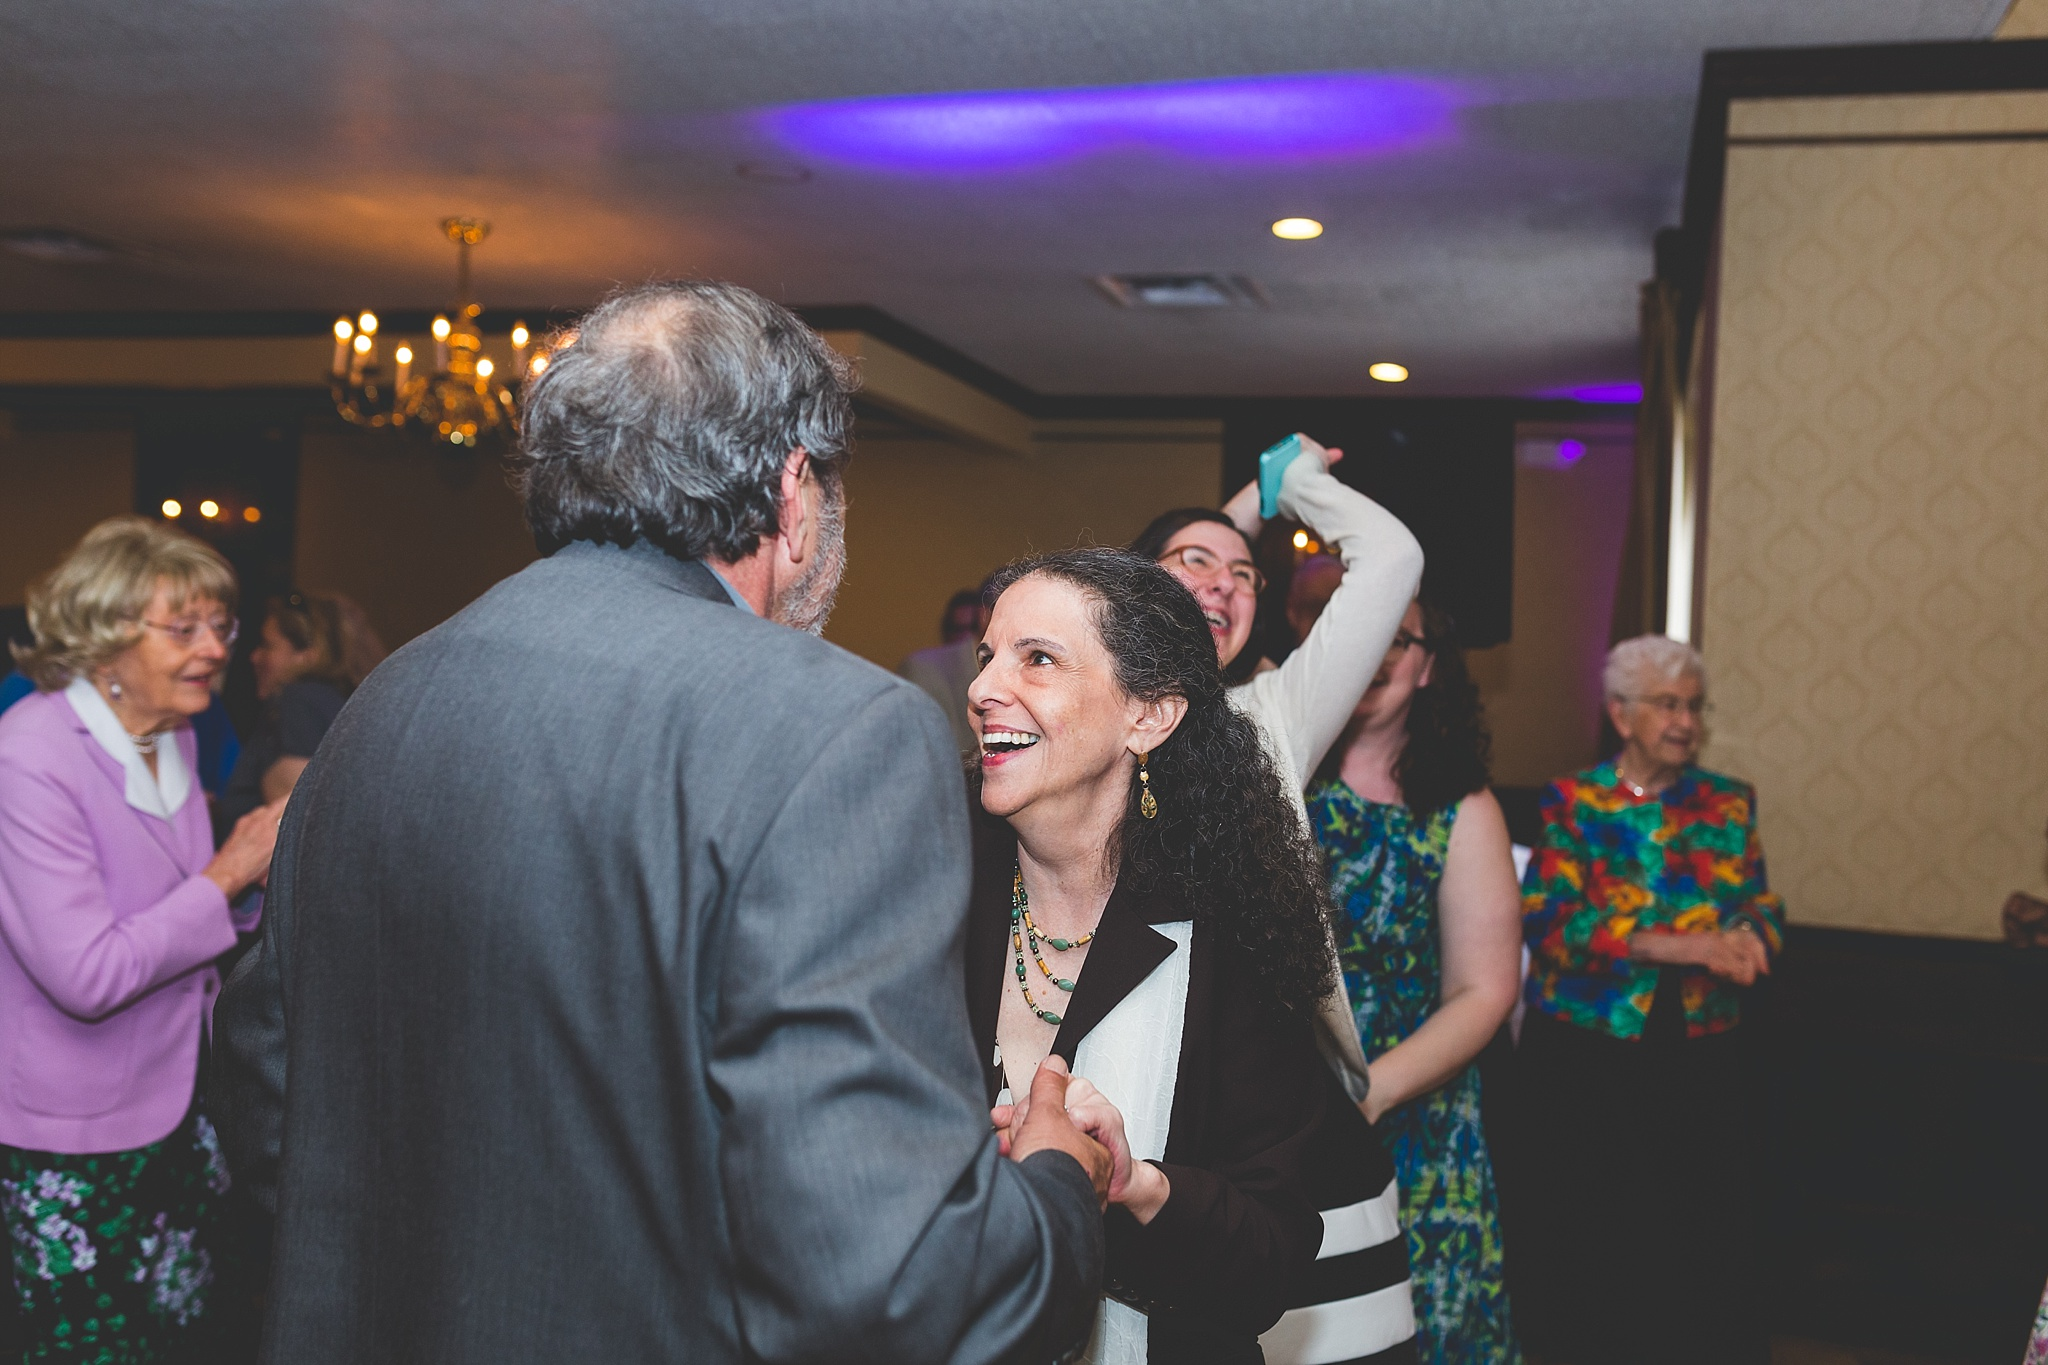 Albany_Wedding_Photographer_8804.jpg